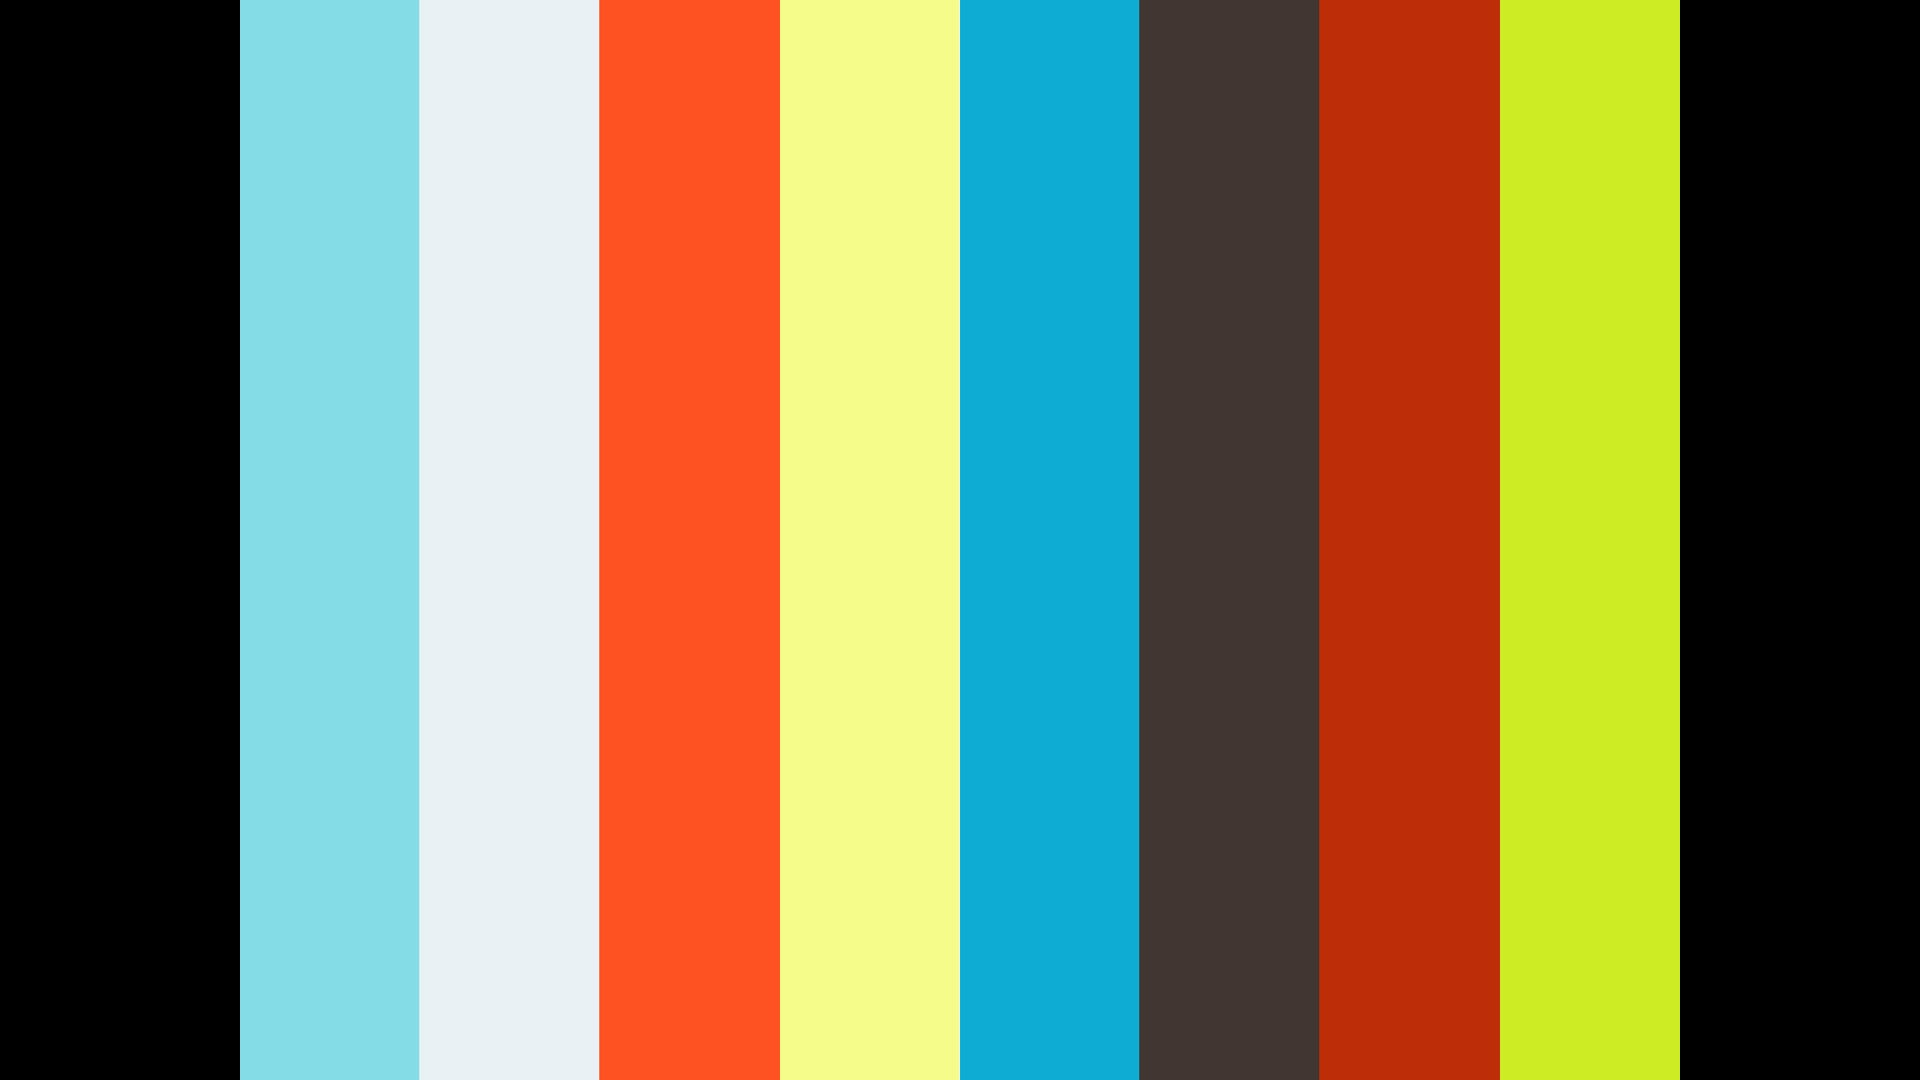 Publicité Auchan 2015 : « Build Me Up Buttercup » (1/3)